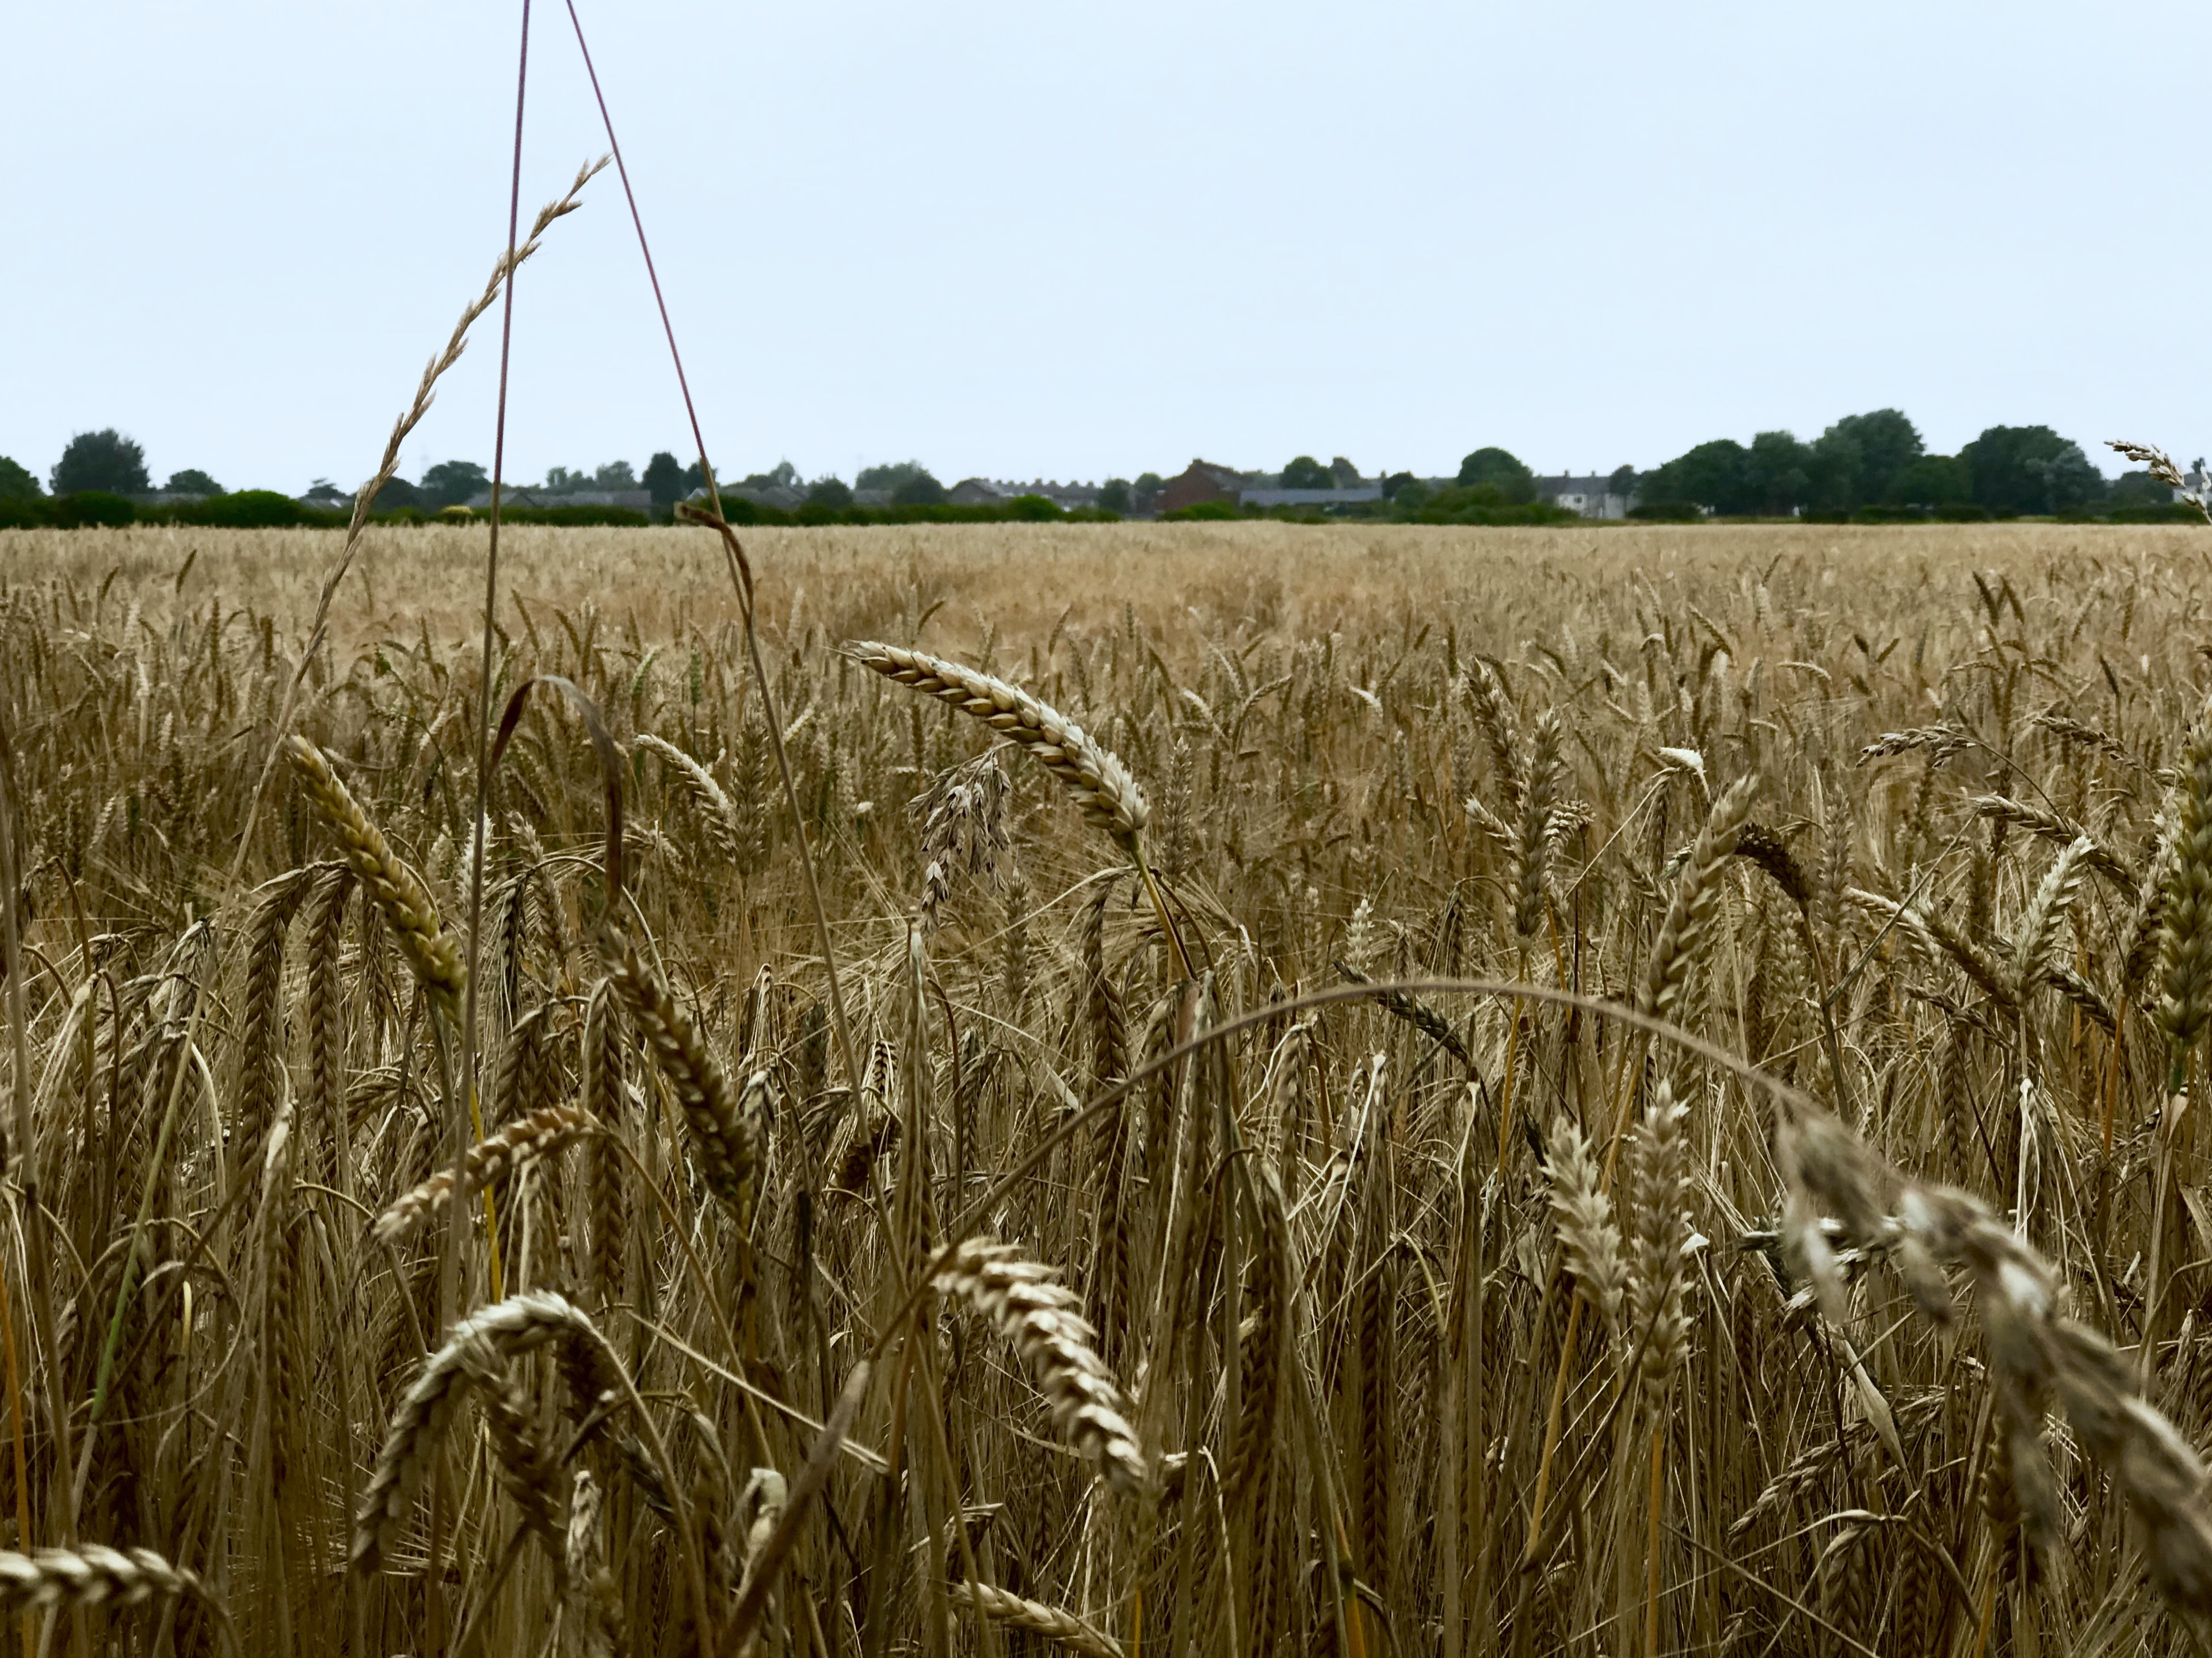 Vast field of wheat on a country farm